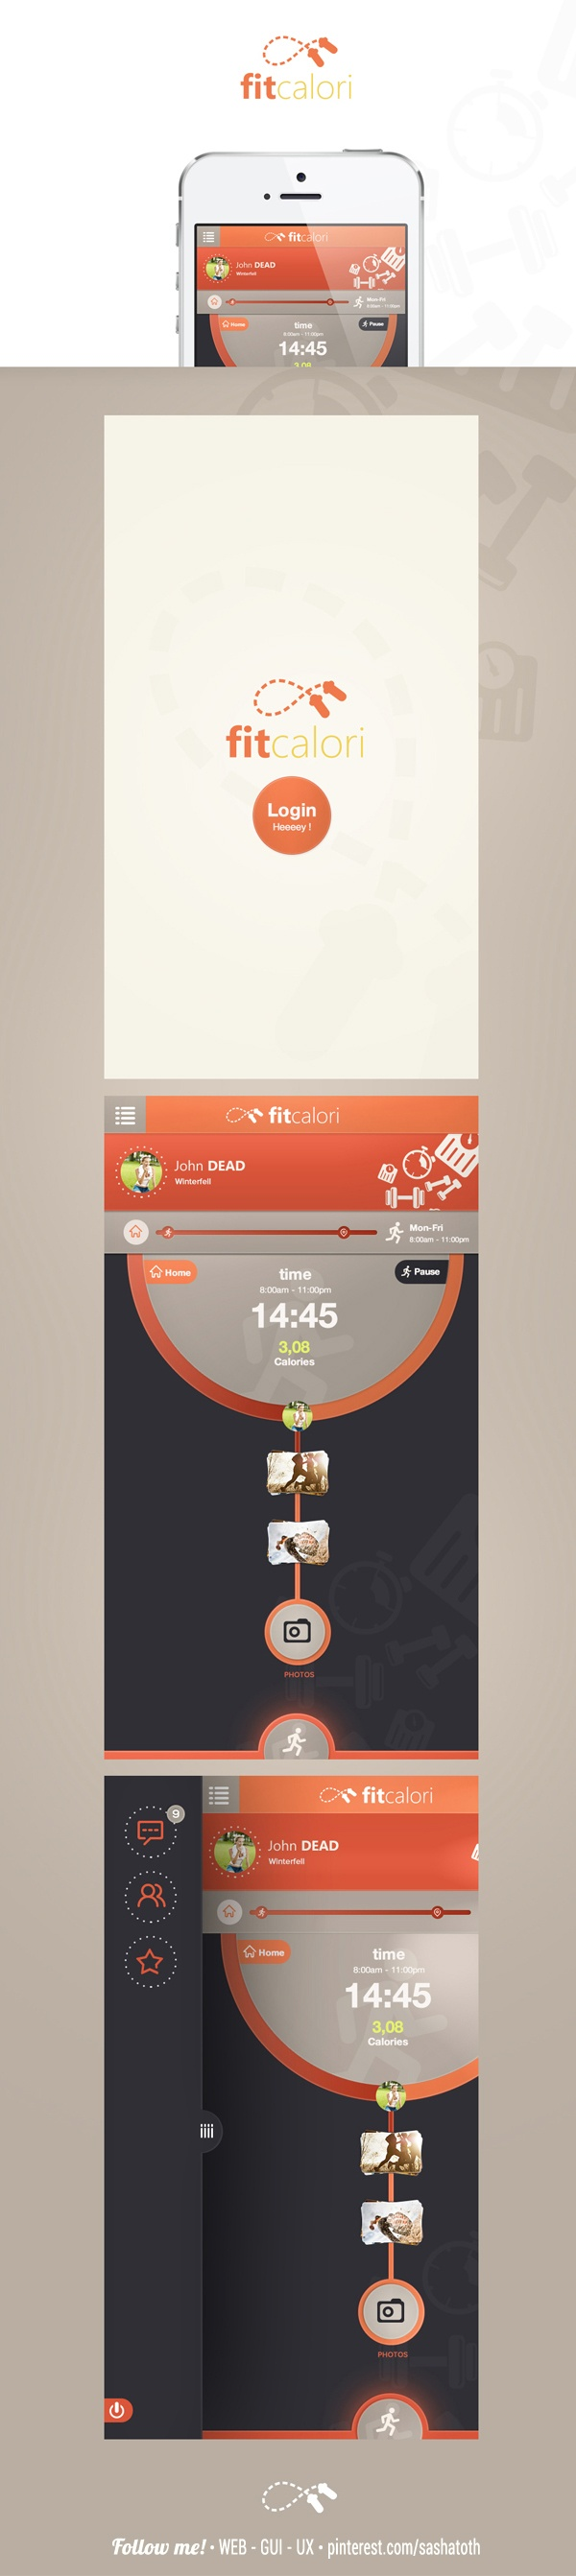 Fitcalori app concept by Cüneyt SEN, via Behance